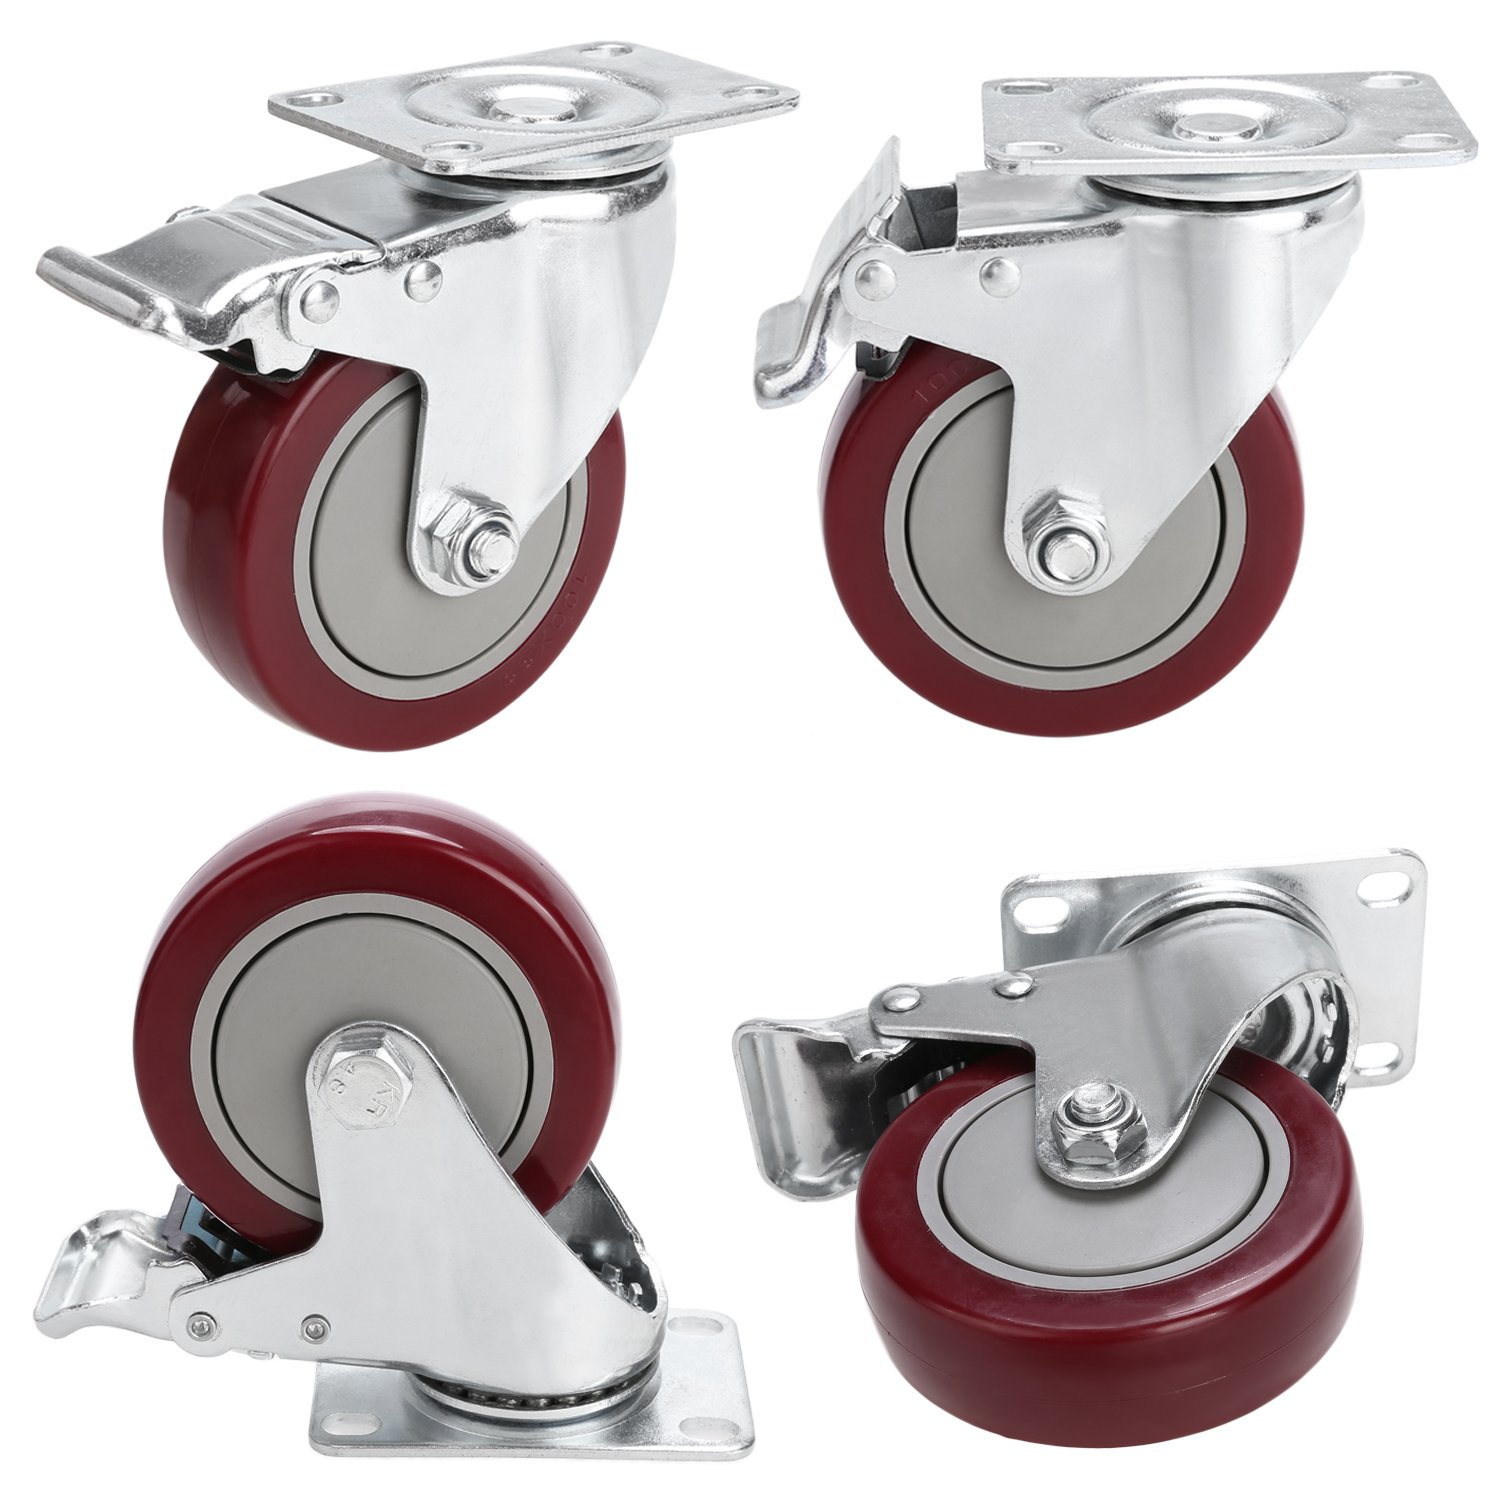 4'' PVC Heavy Duty Swivel Caster Wheels Lockable Ball Bearing 1200lbs (Set of 4) - Red by COOCHEER